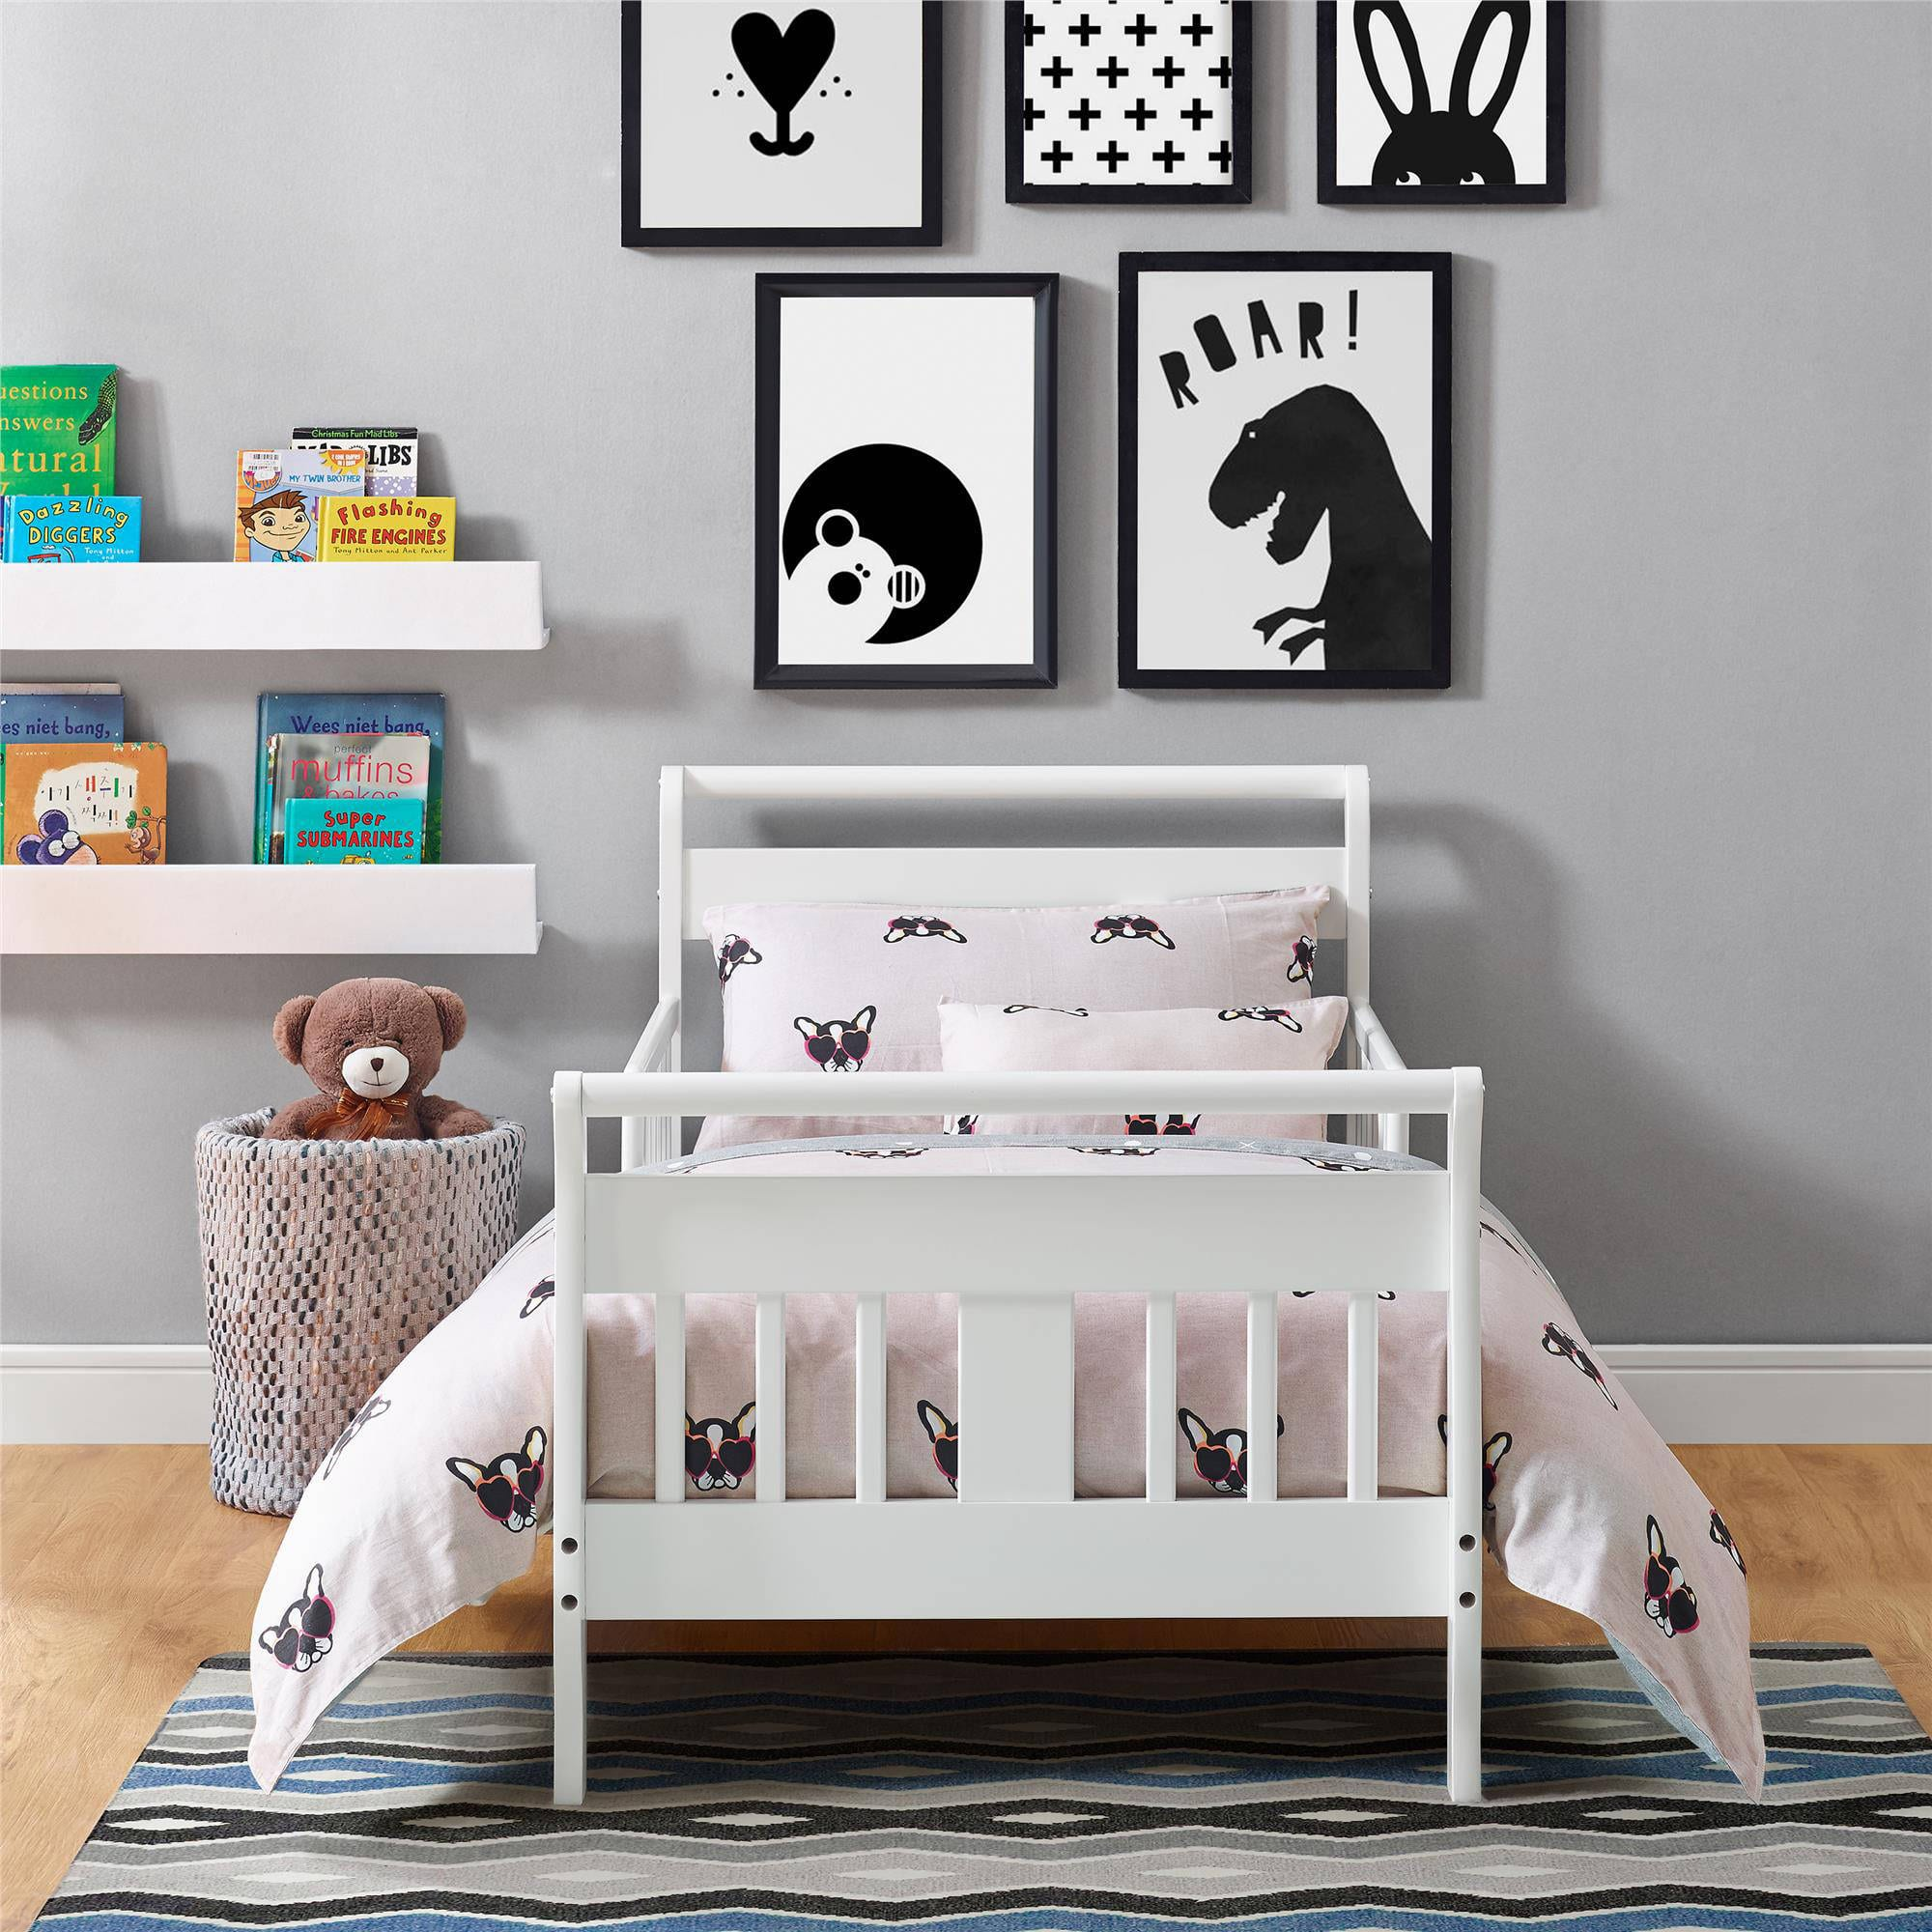 Baby Relax Sleigh Toddler Bed (White) $55 or Delta Toddler Bed w/ Guardrails (3 colors) $60 + Free shipping